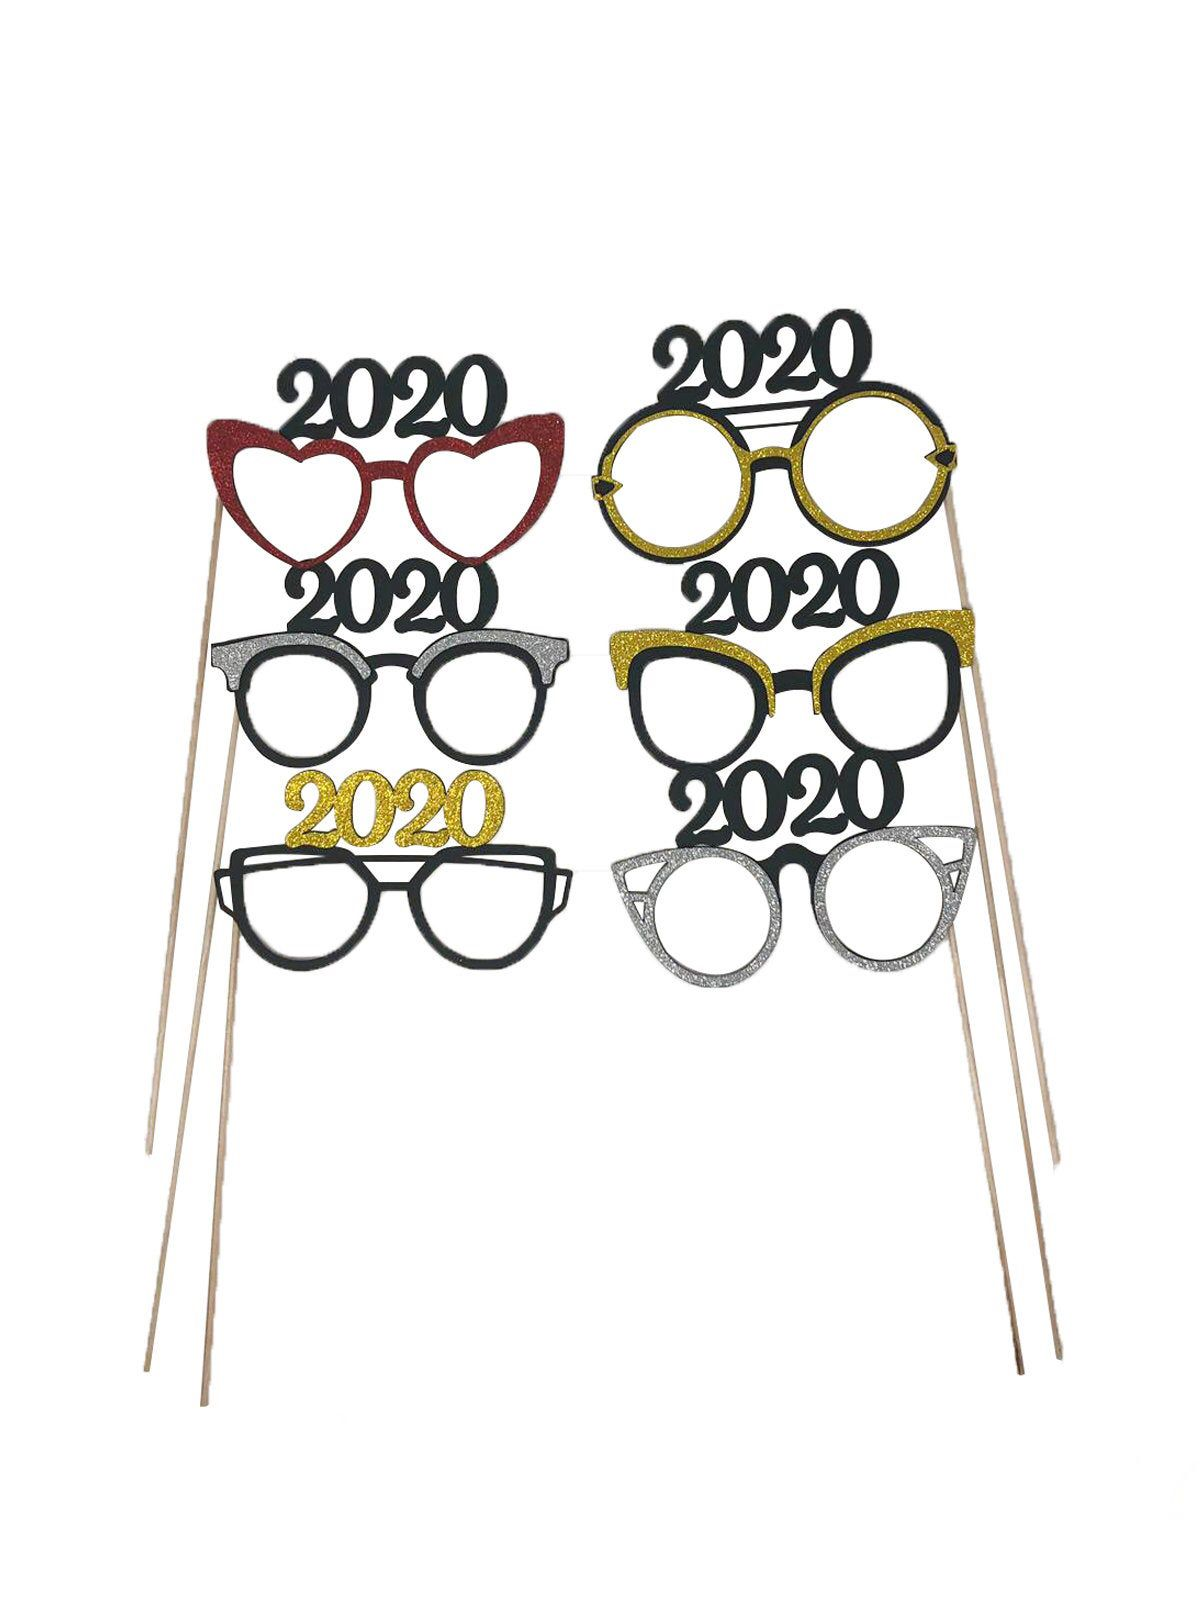 2020 New years photo booth glasses celebration New York